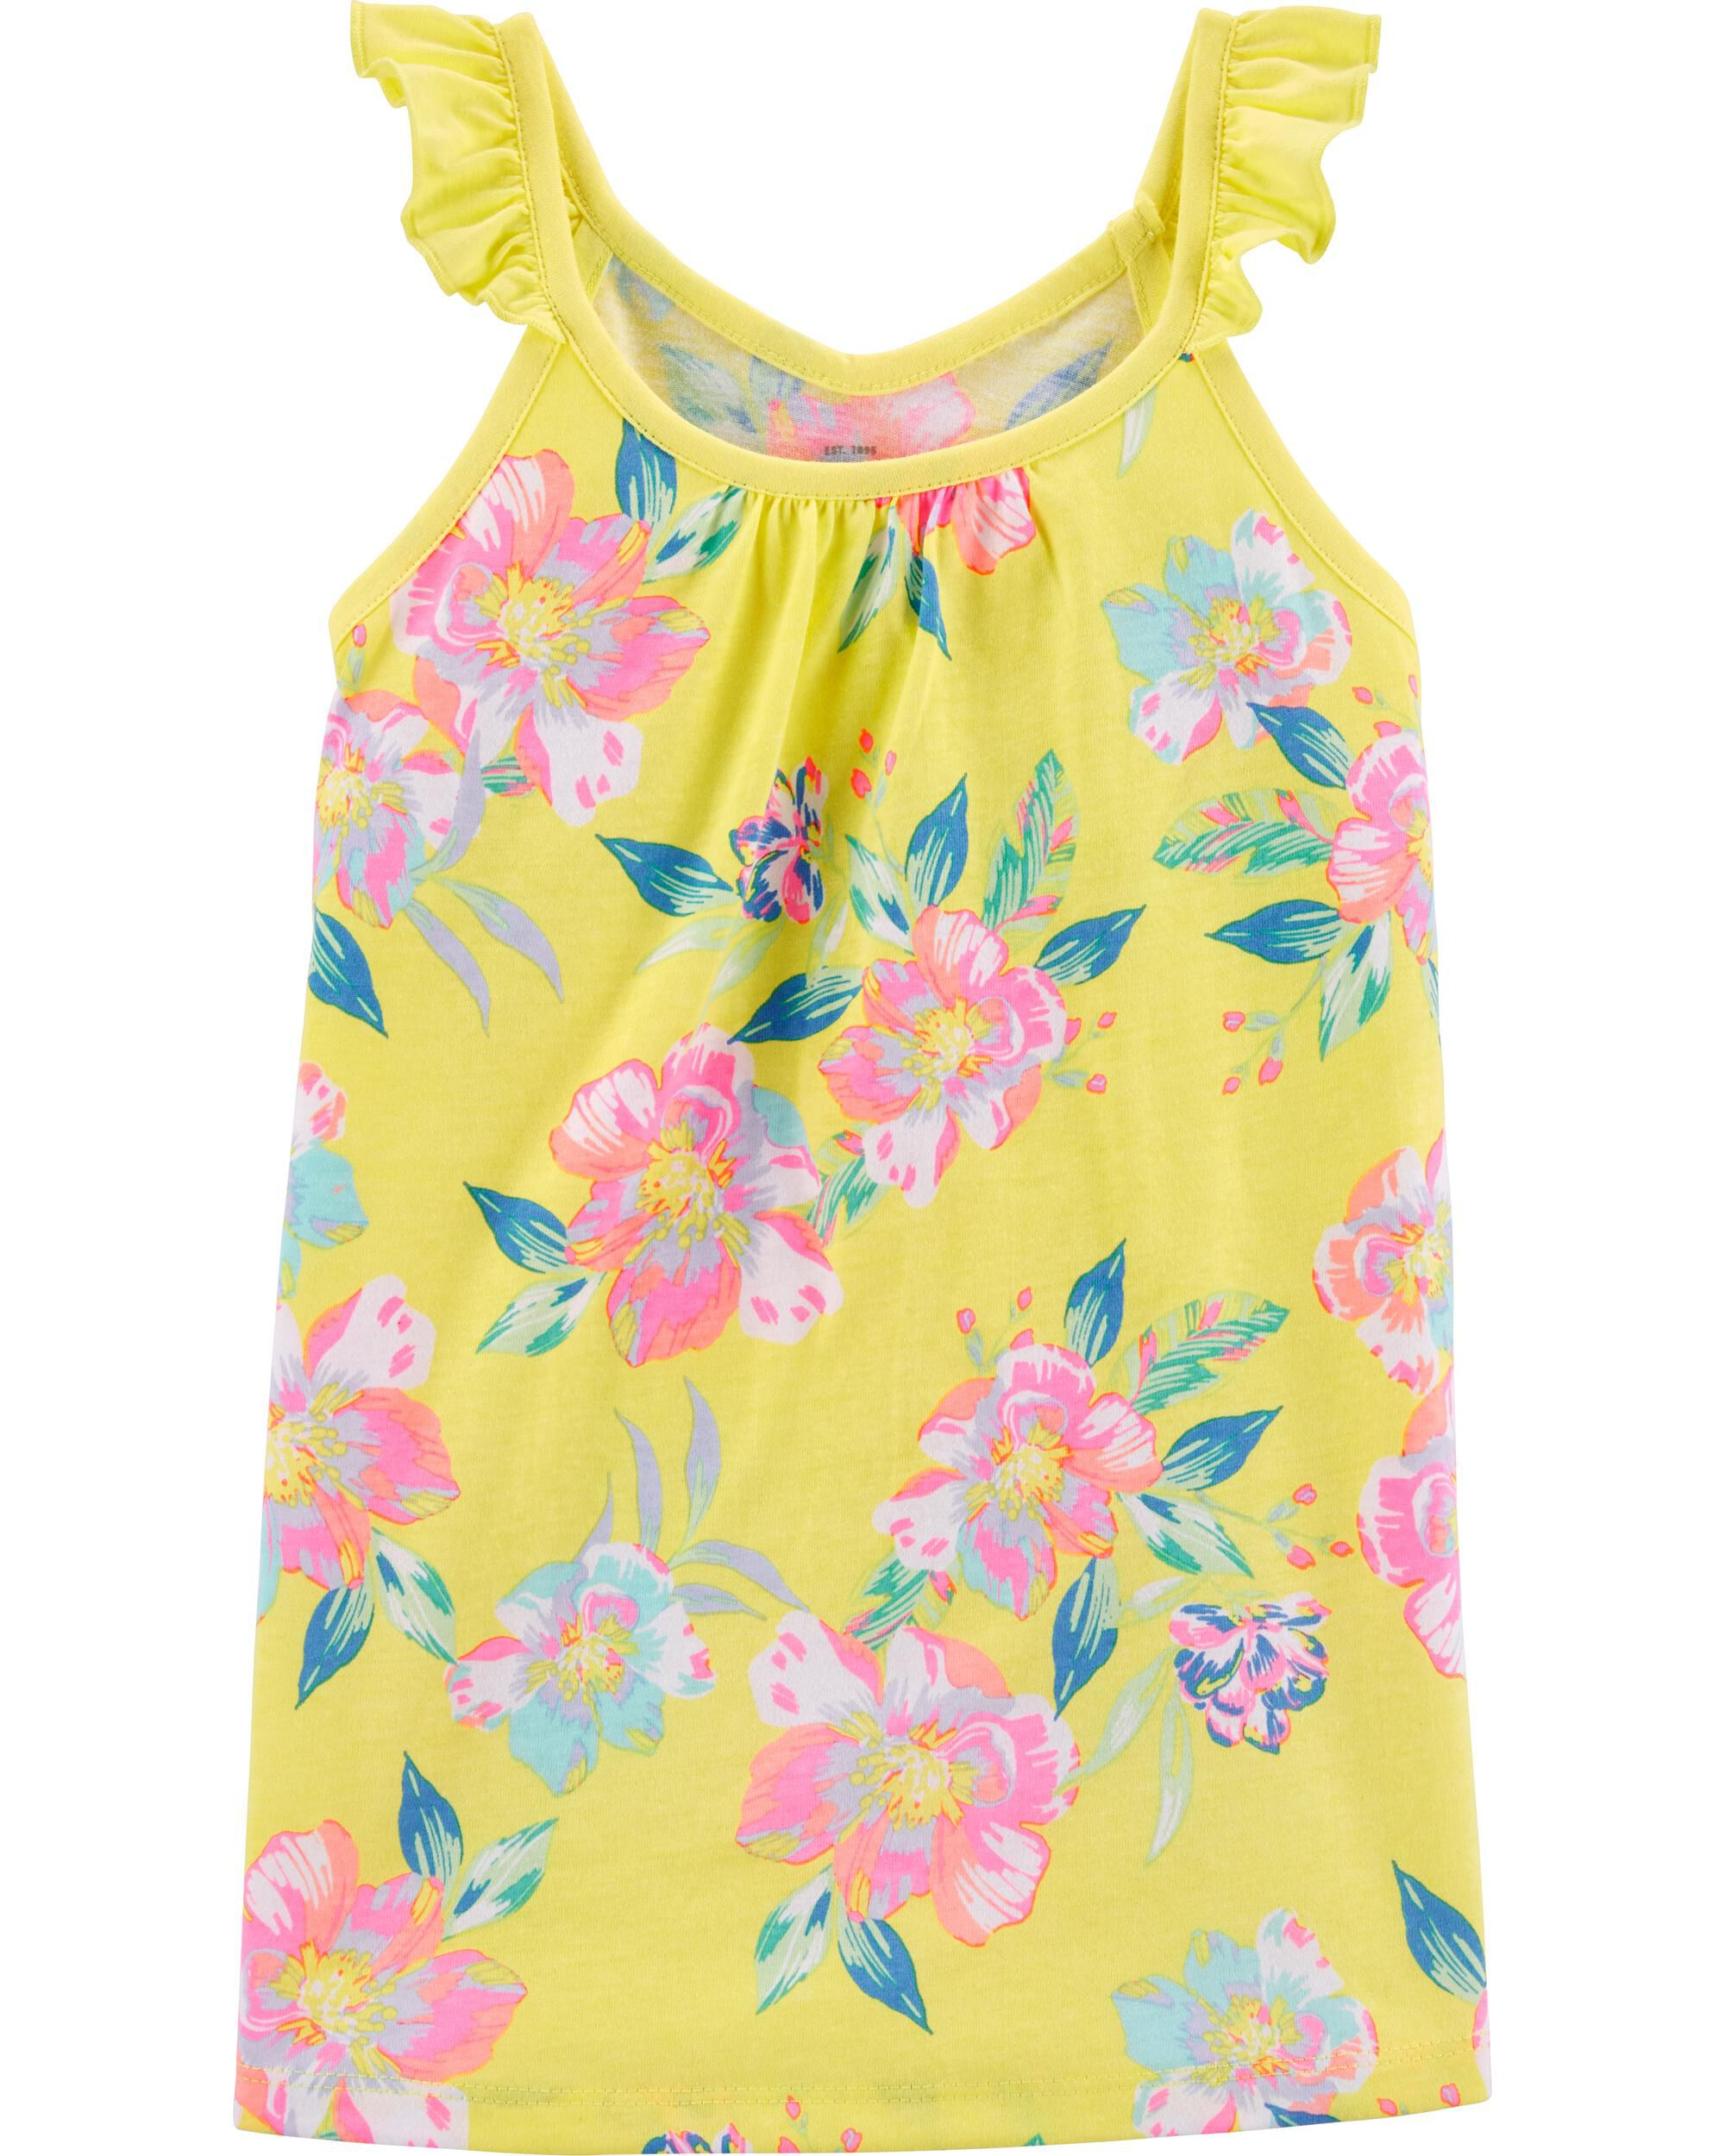 *CLEARANCE* Tropical Floral Ruffle Tank